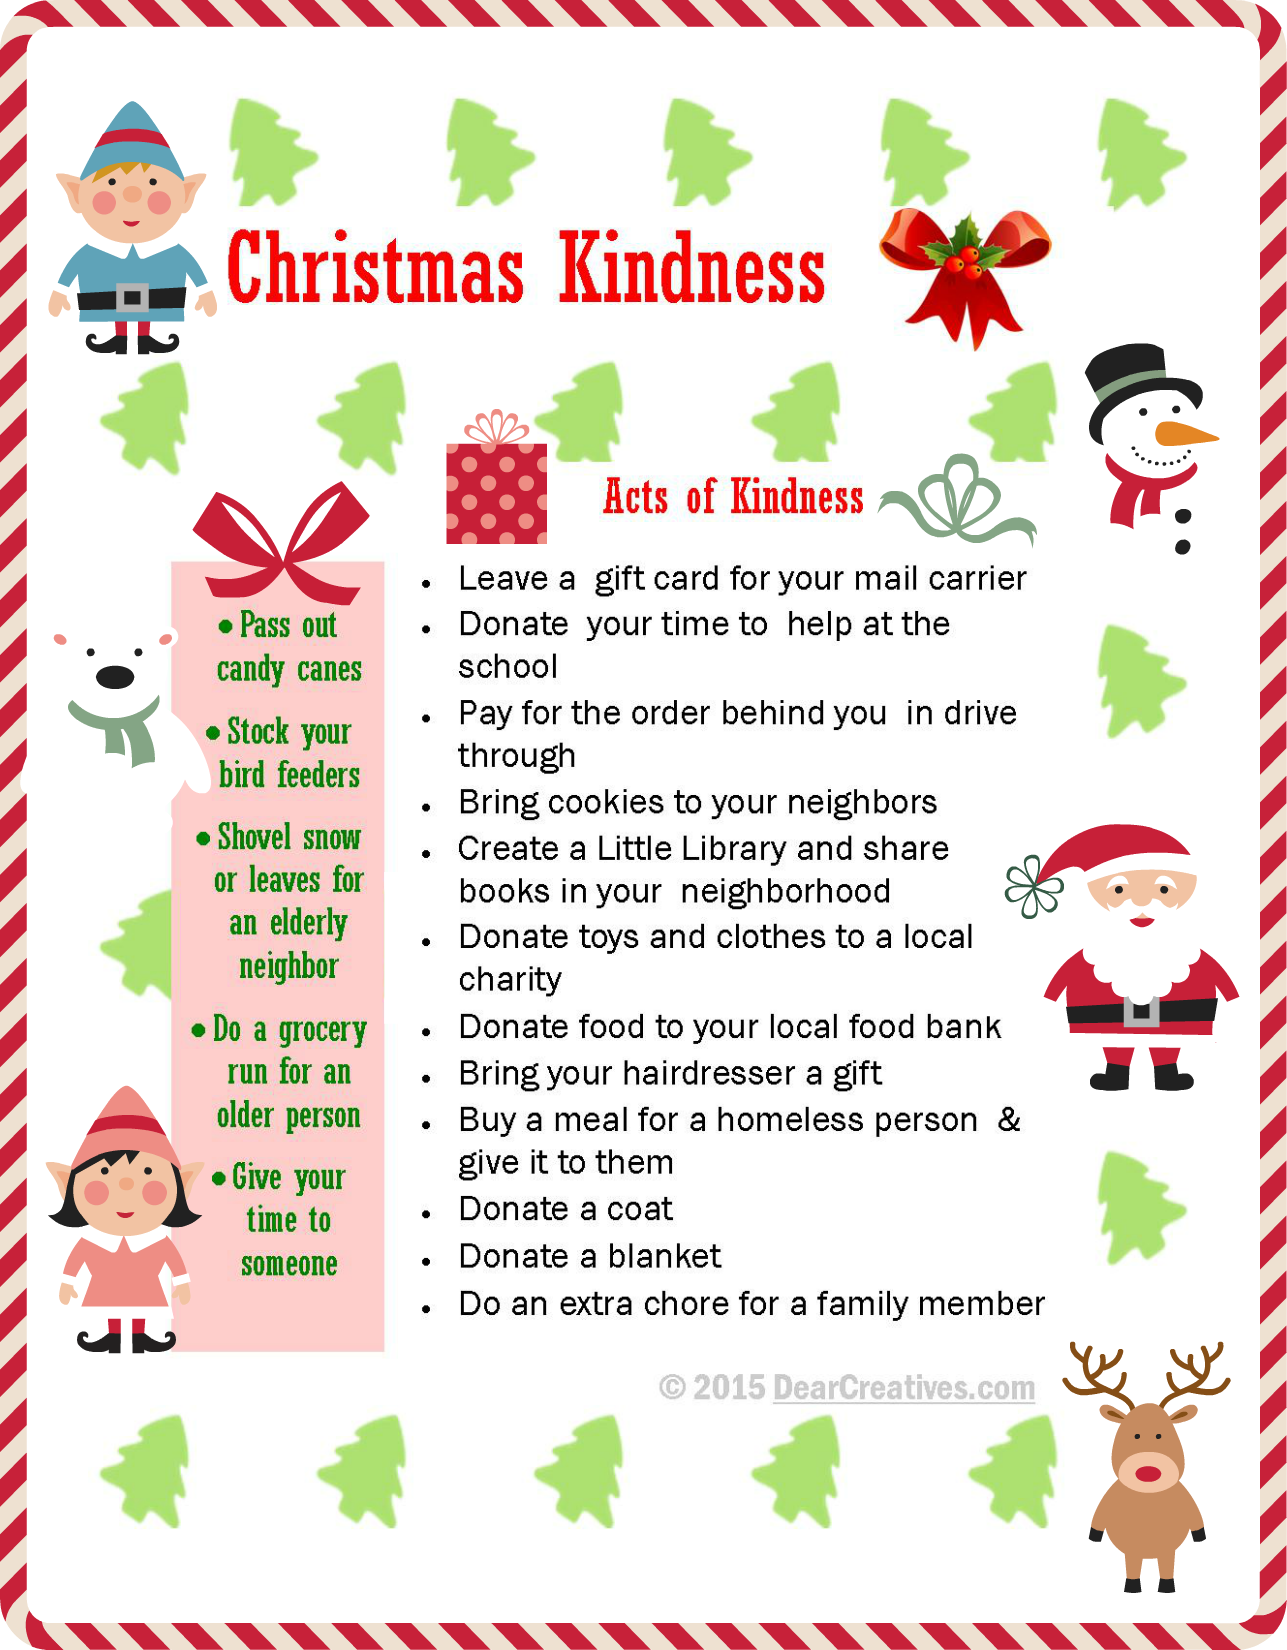 Christmas Kindness | Simple Acts of Kindness |Free Printable